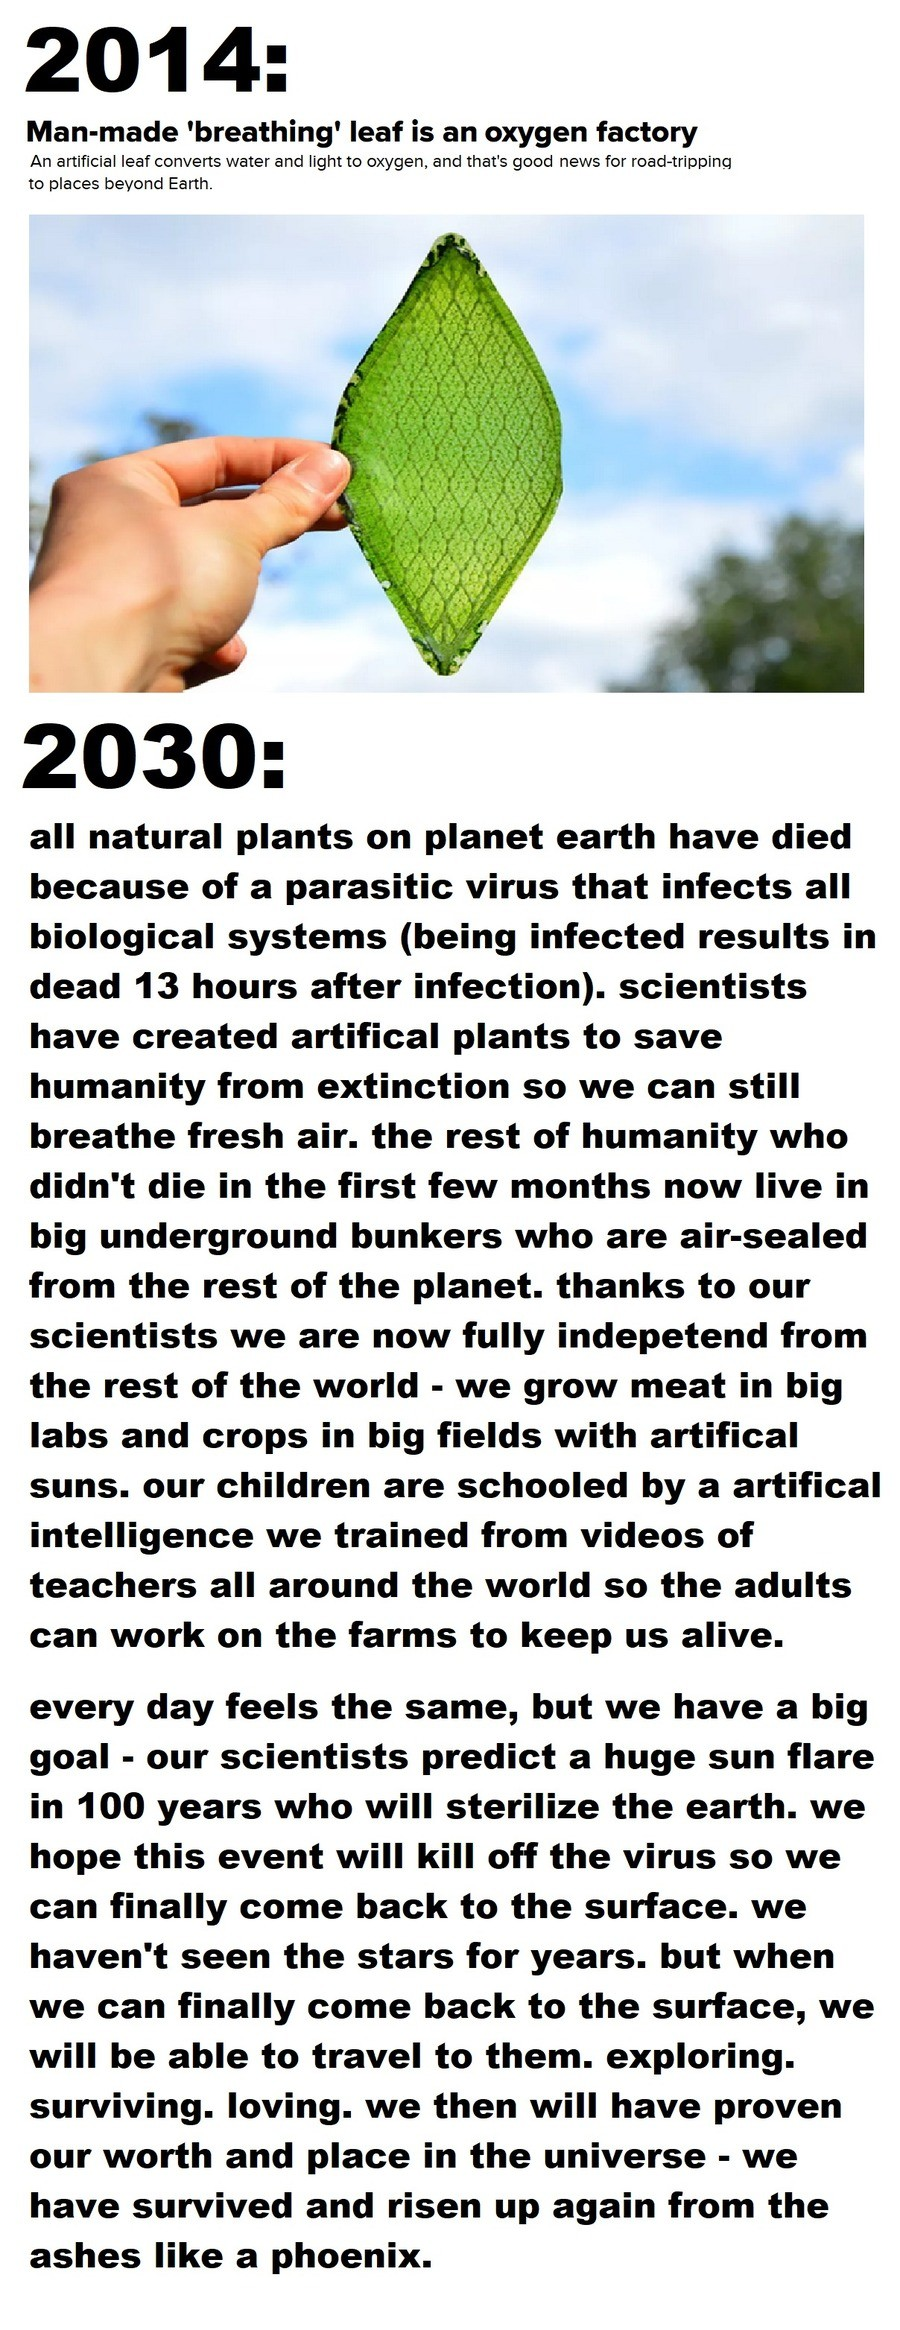 it's the year 2030.... .. Yeah, they'd probably emerge from their respective bunkers as tribe like groups immediately killing each other over land claims.